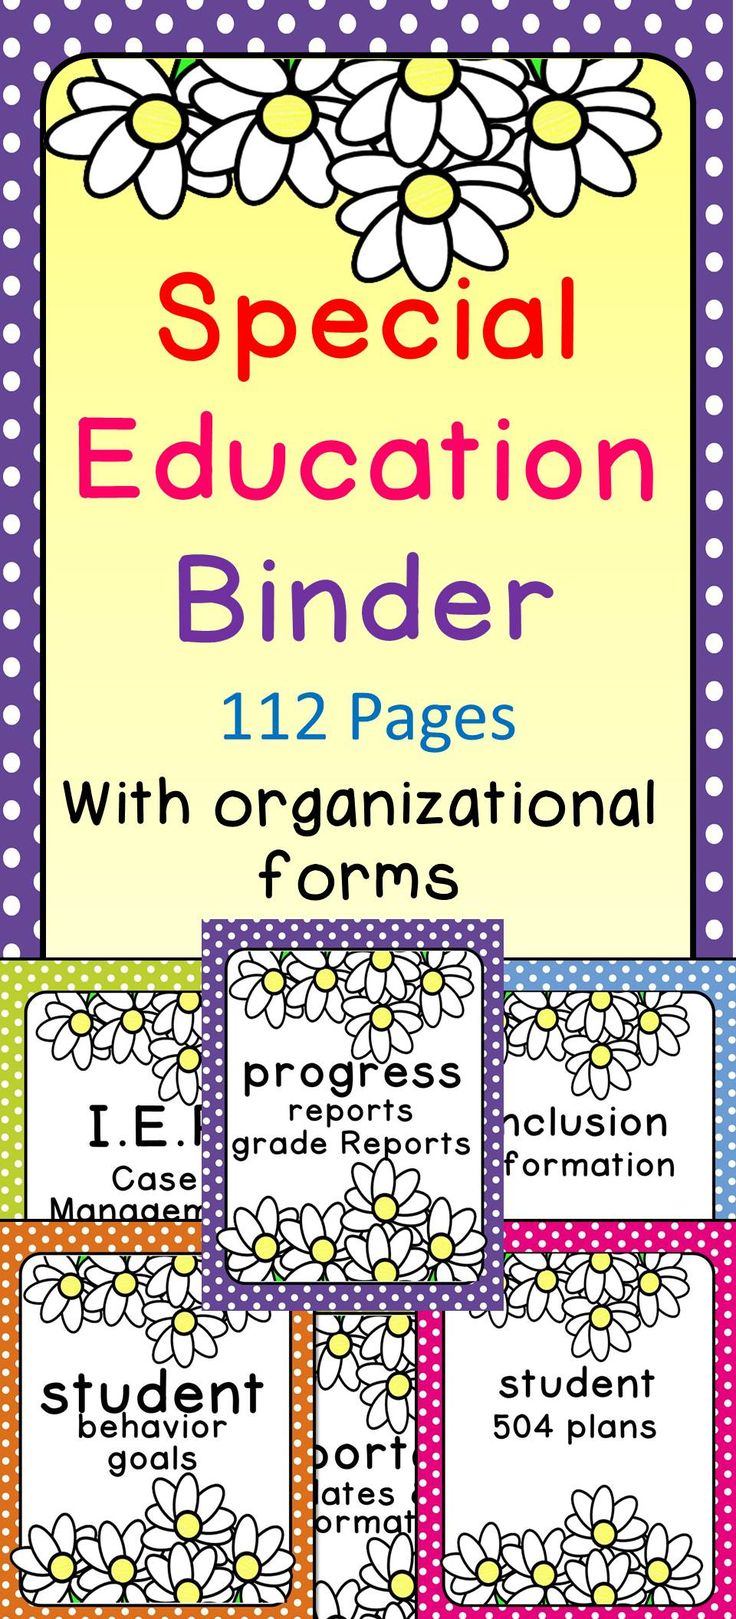 Who doesn't love Daisy's and Polka-Dots? Special education binder with organizational forms for IEP and Interventions.  This is a must see.